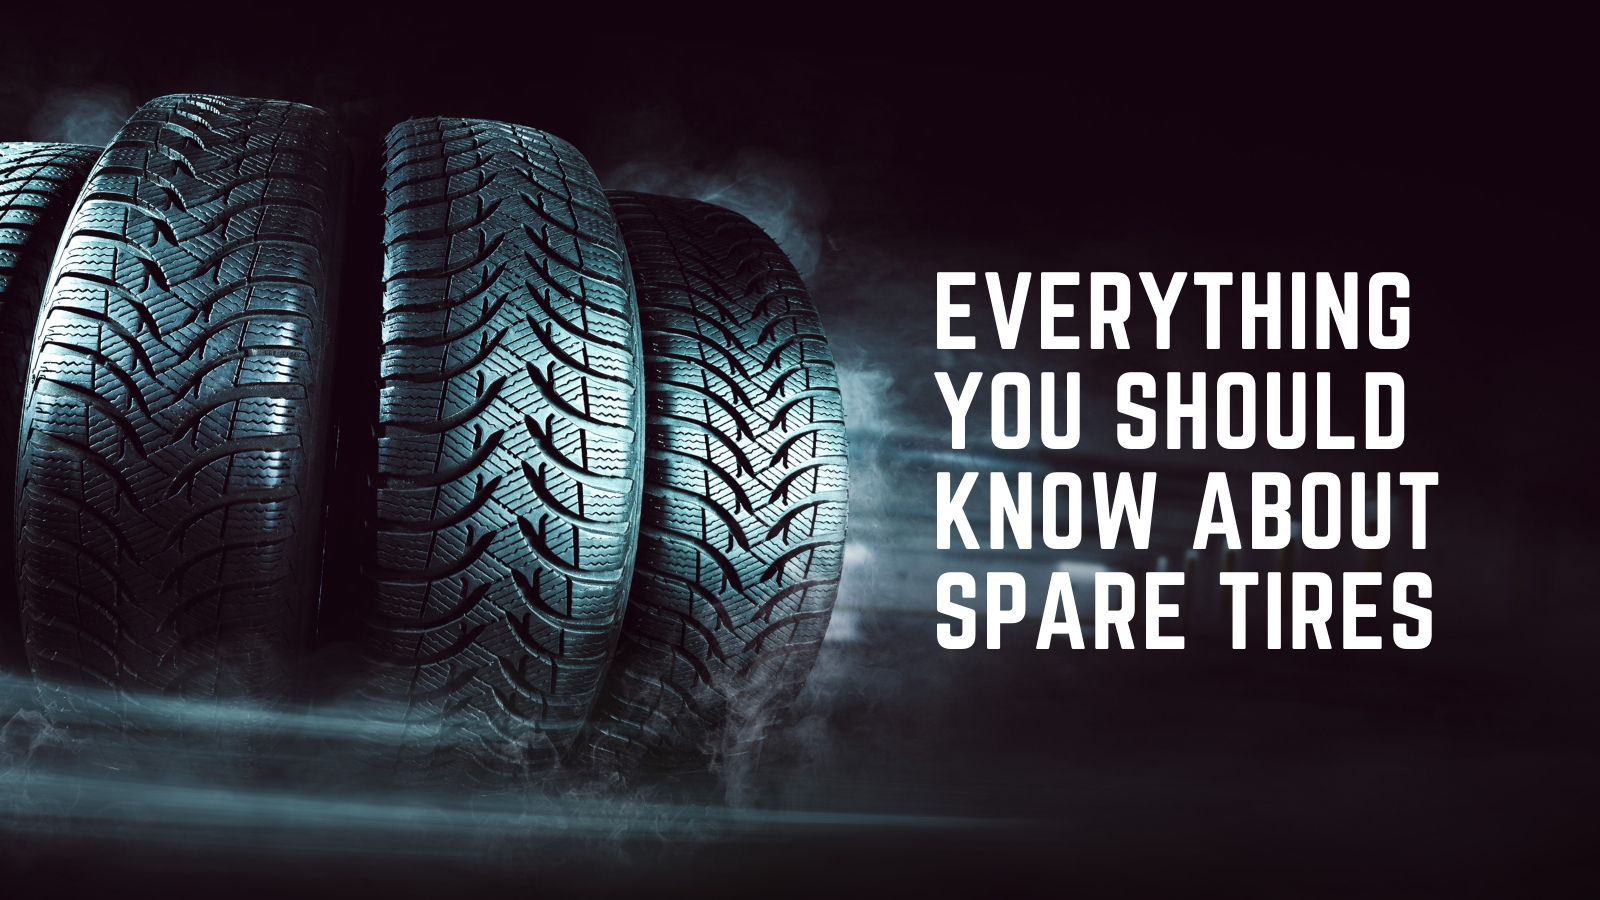 Everything you should know about spare tires